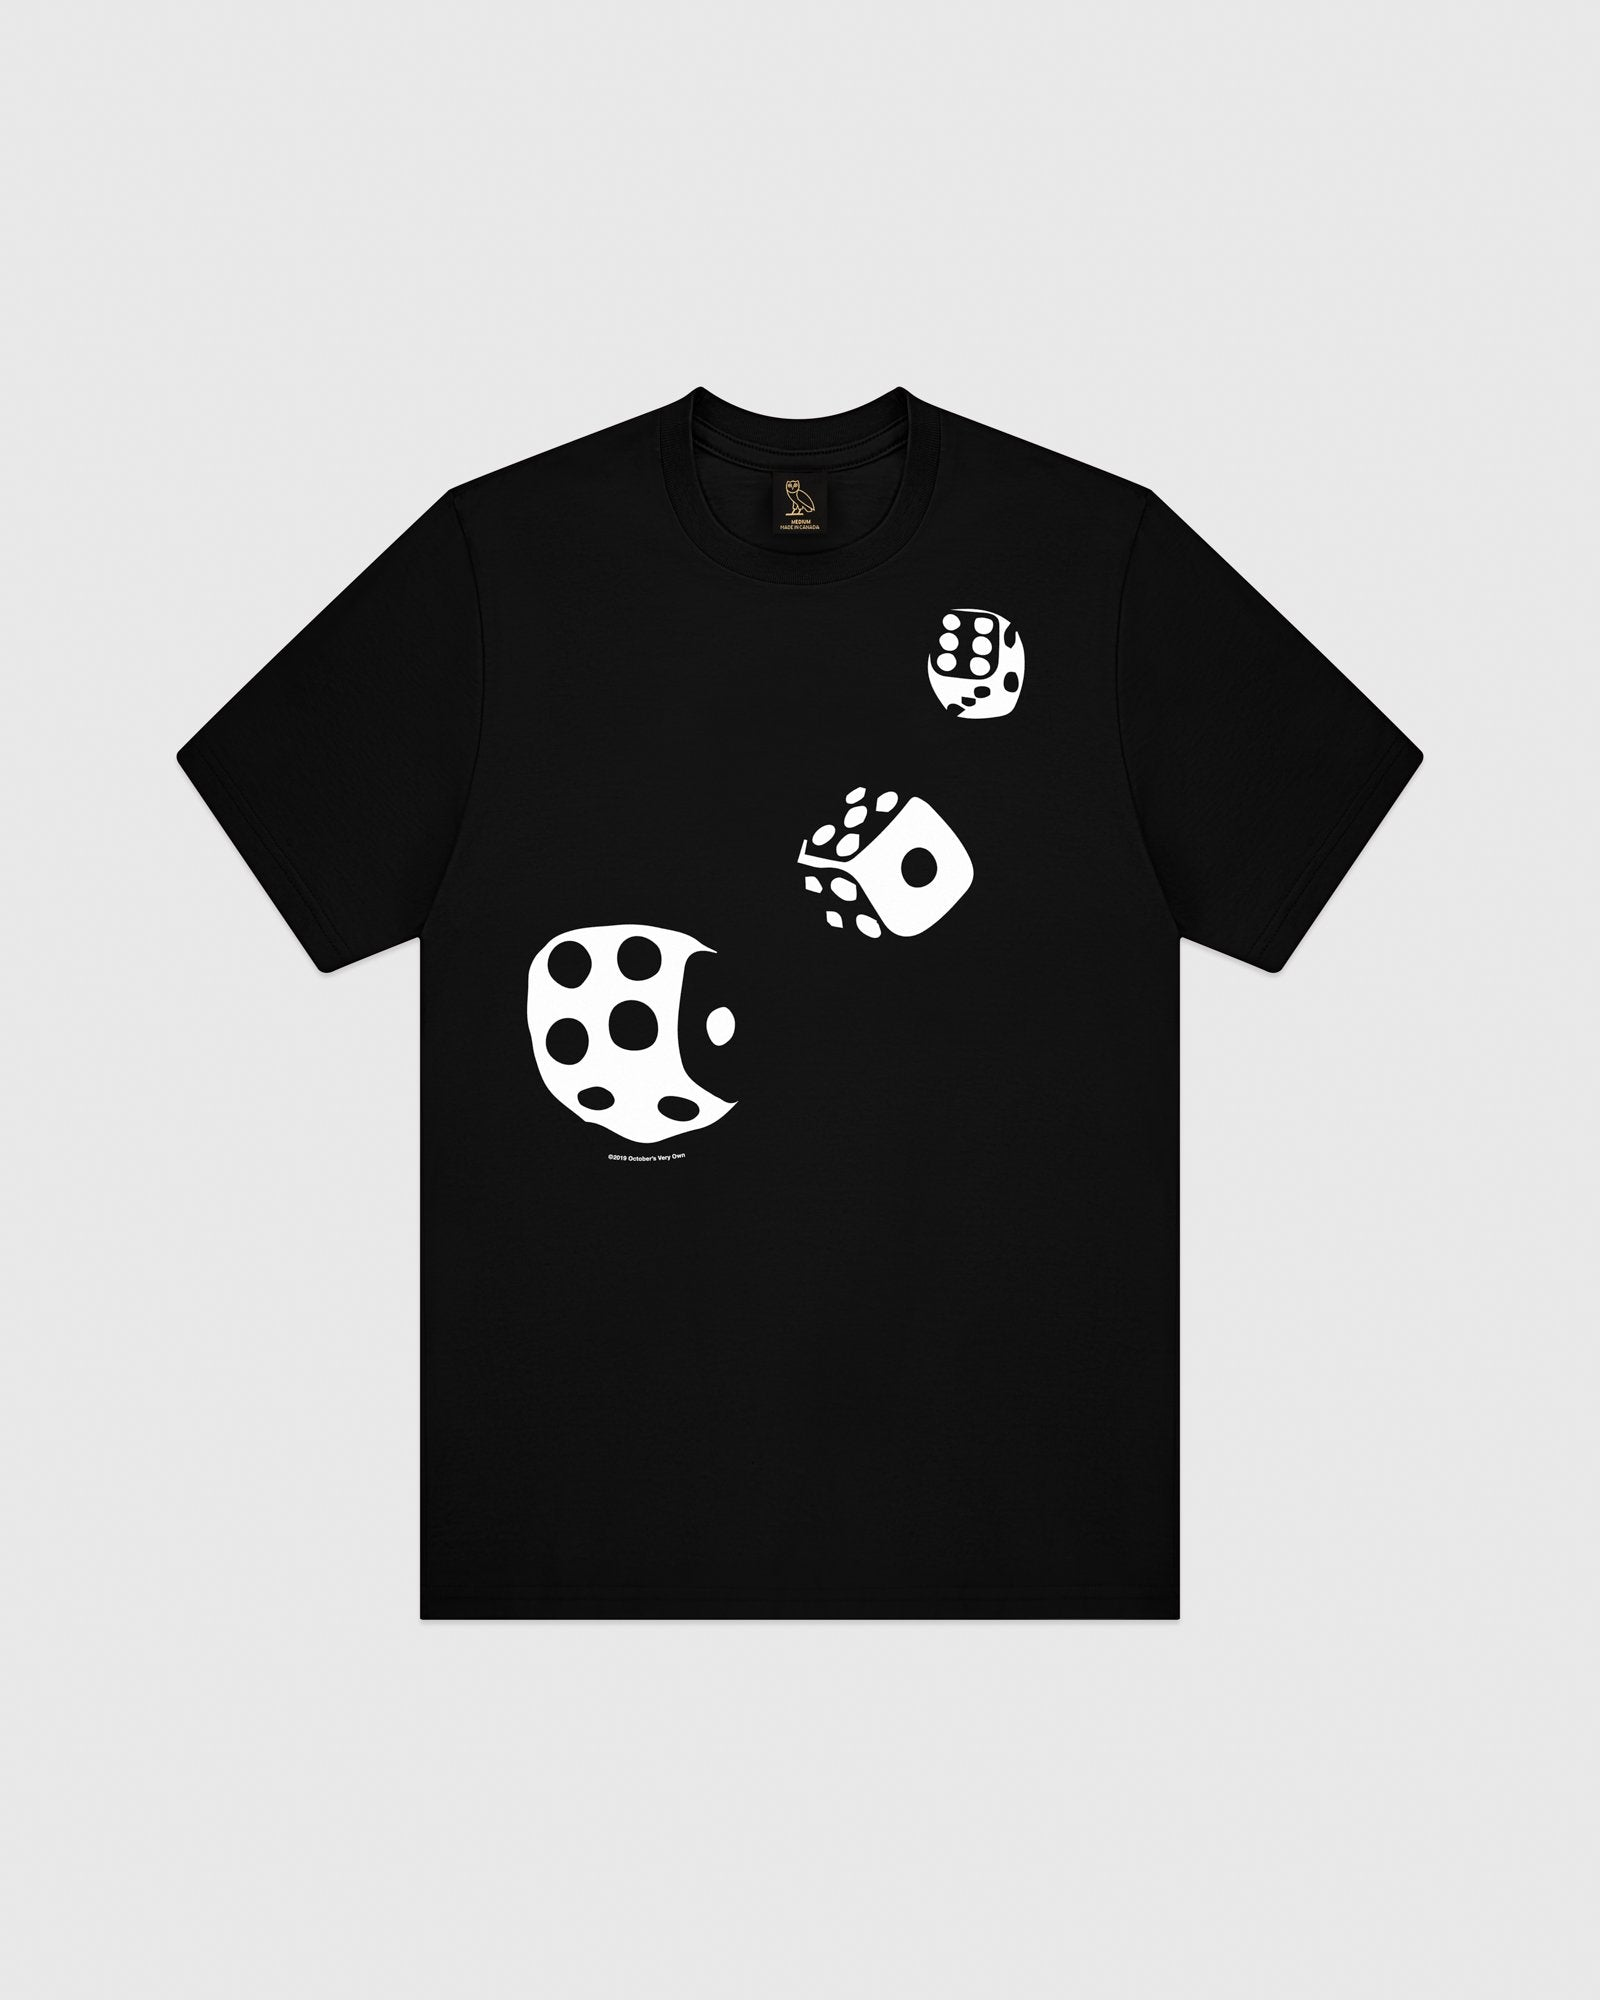 416 DICE T-SHIRT - BLACK IMAGE #1